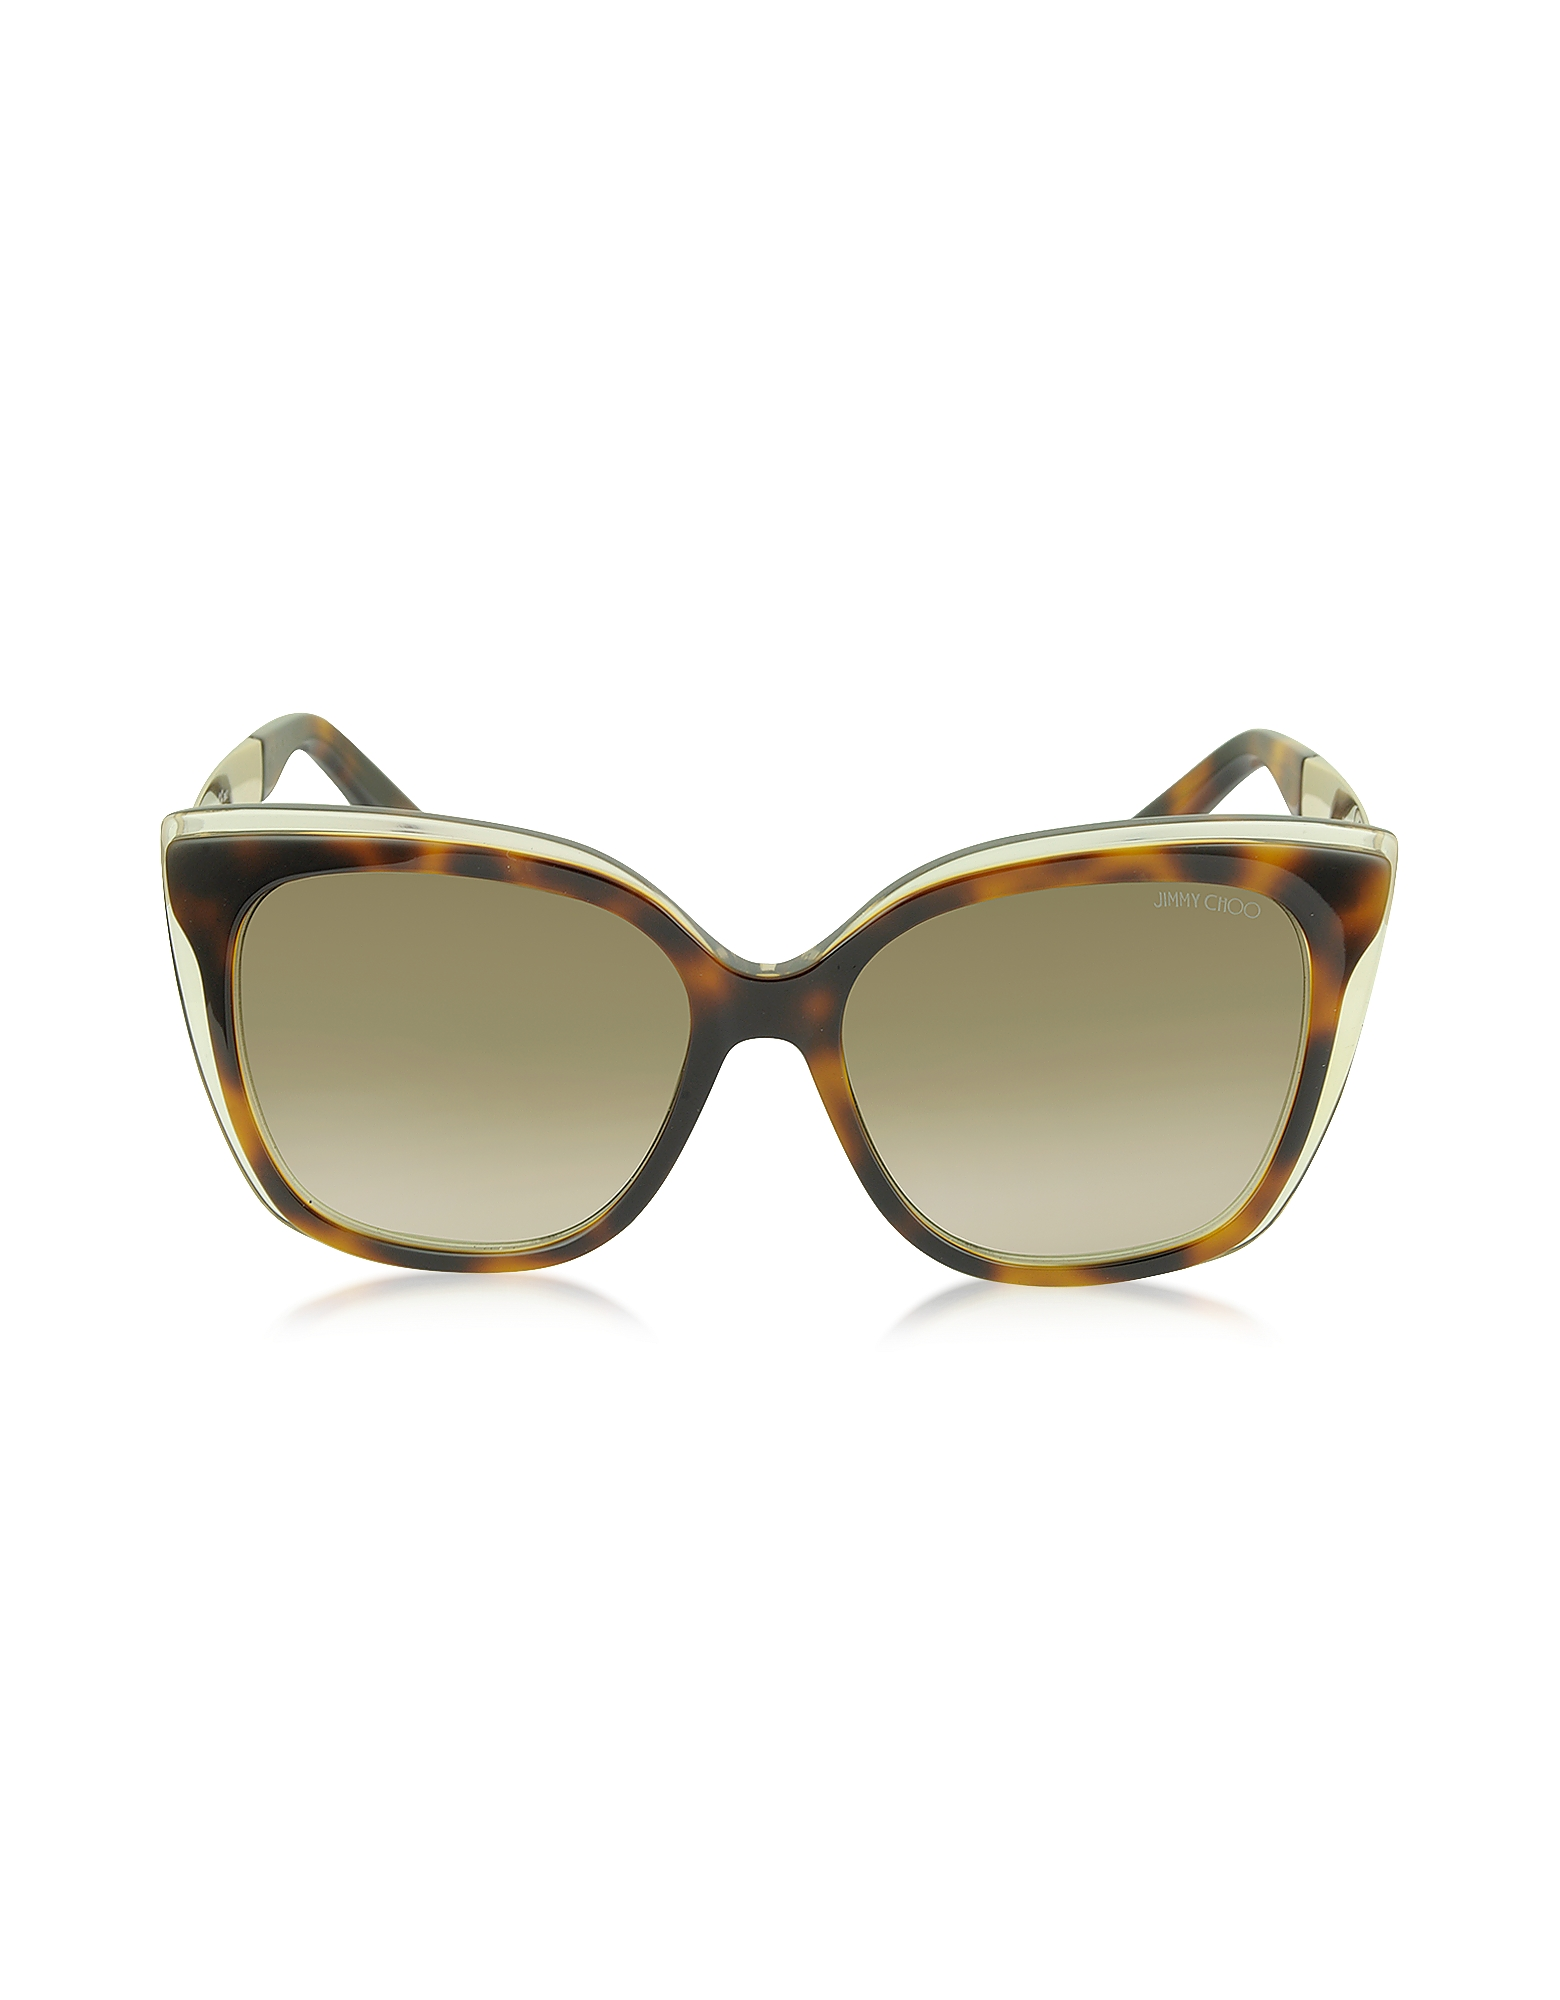 Jimmy Choo Designer Sunglasses, OCTAVIA / S 19WJD Havana Brown Acetate Cat Eye Sunglasses